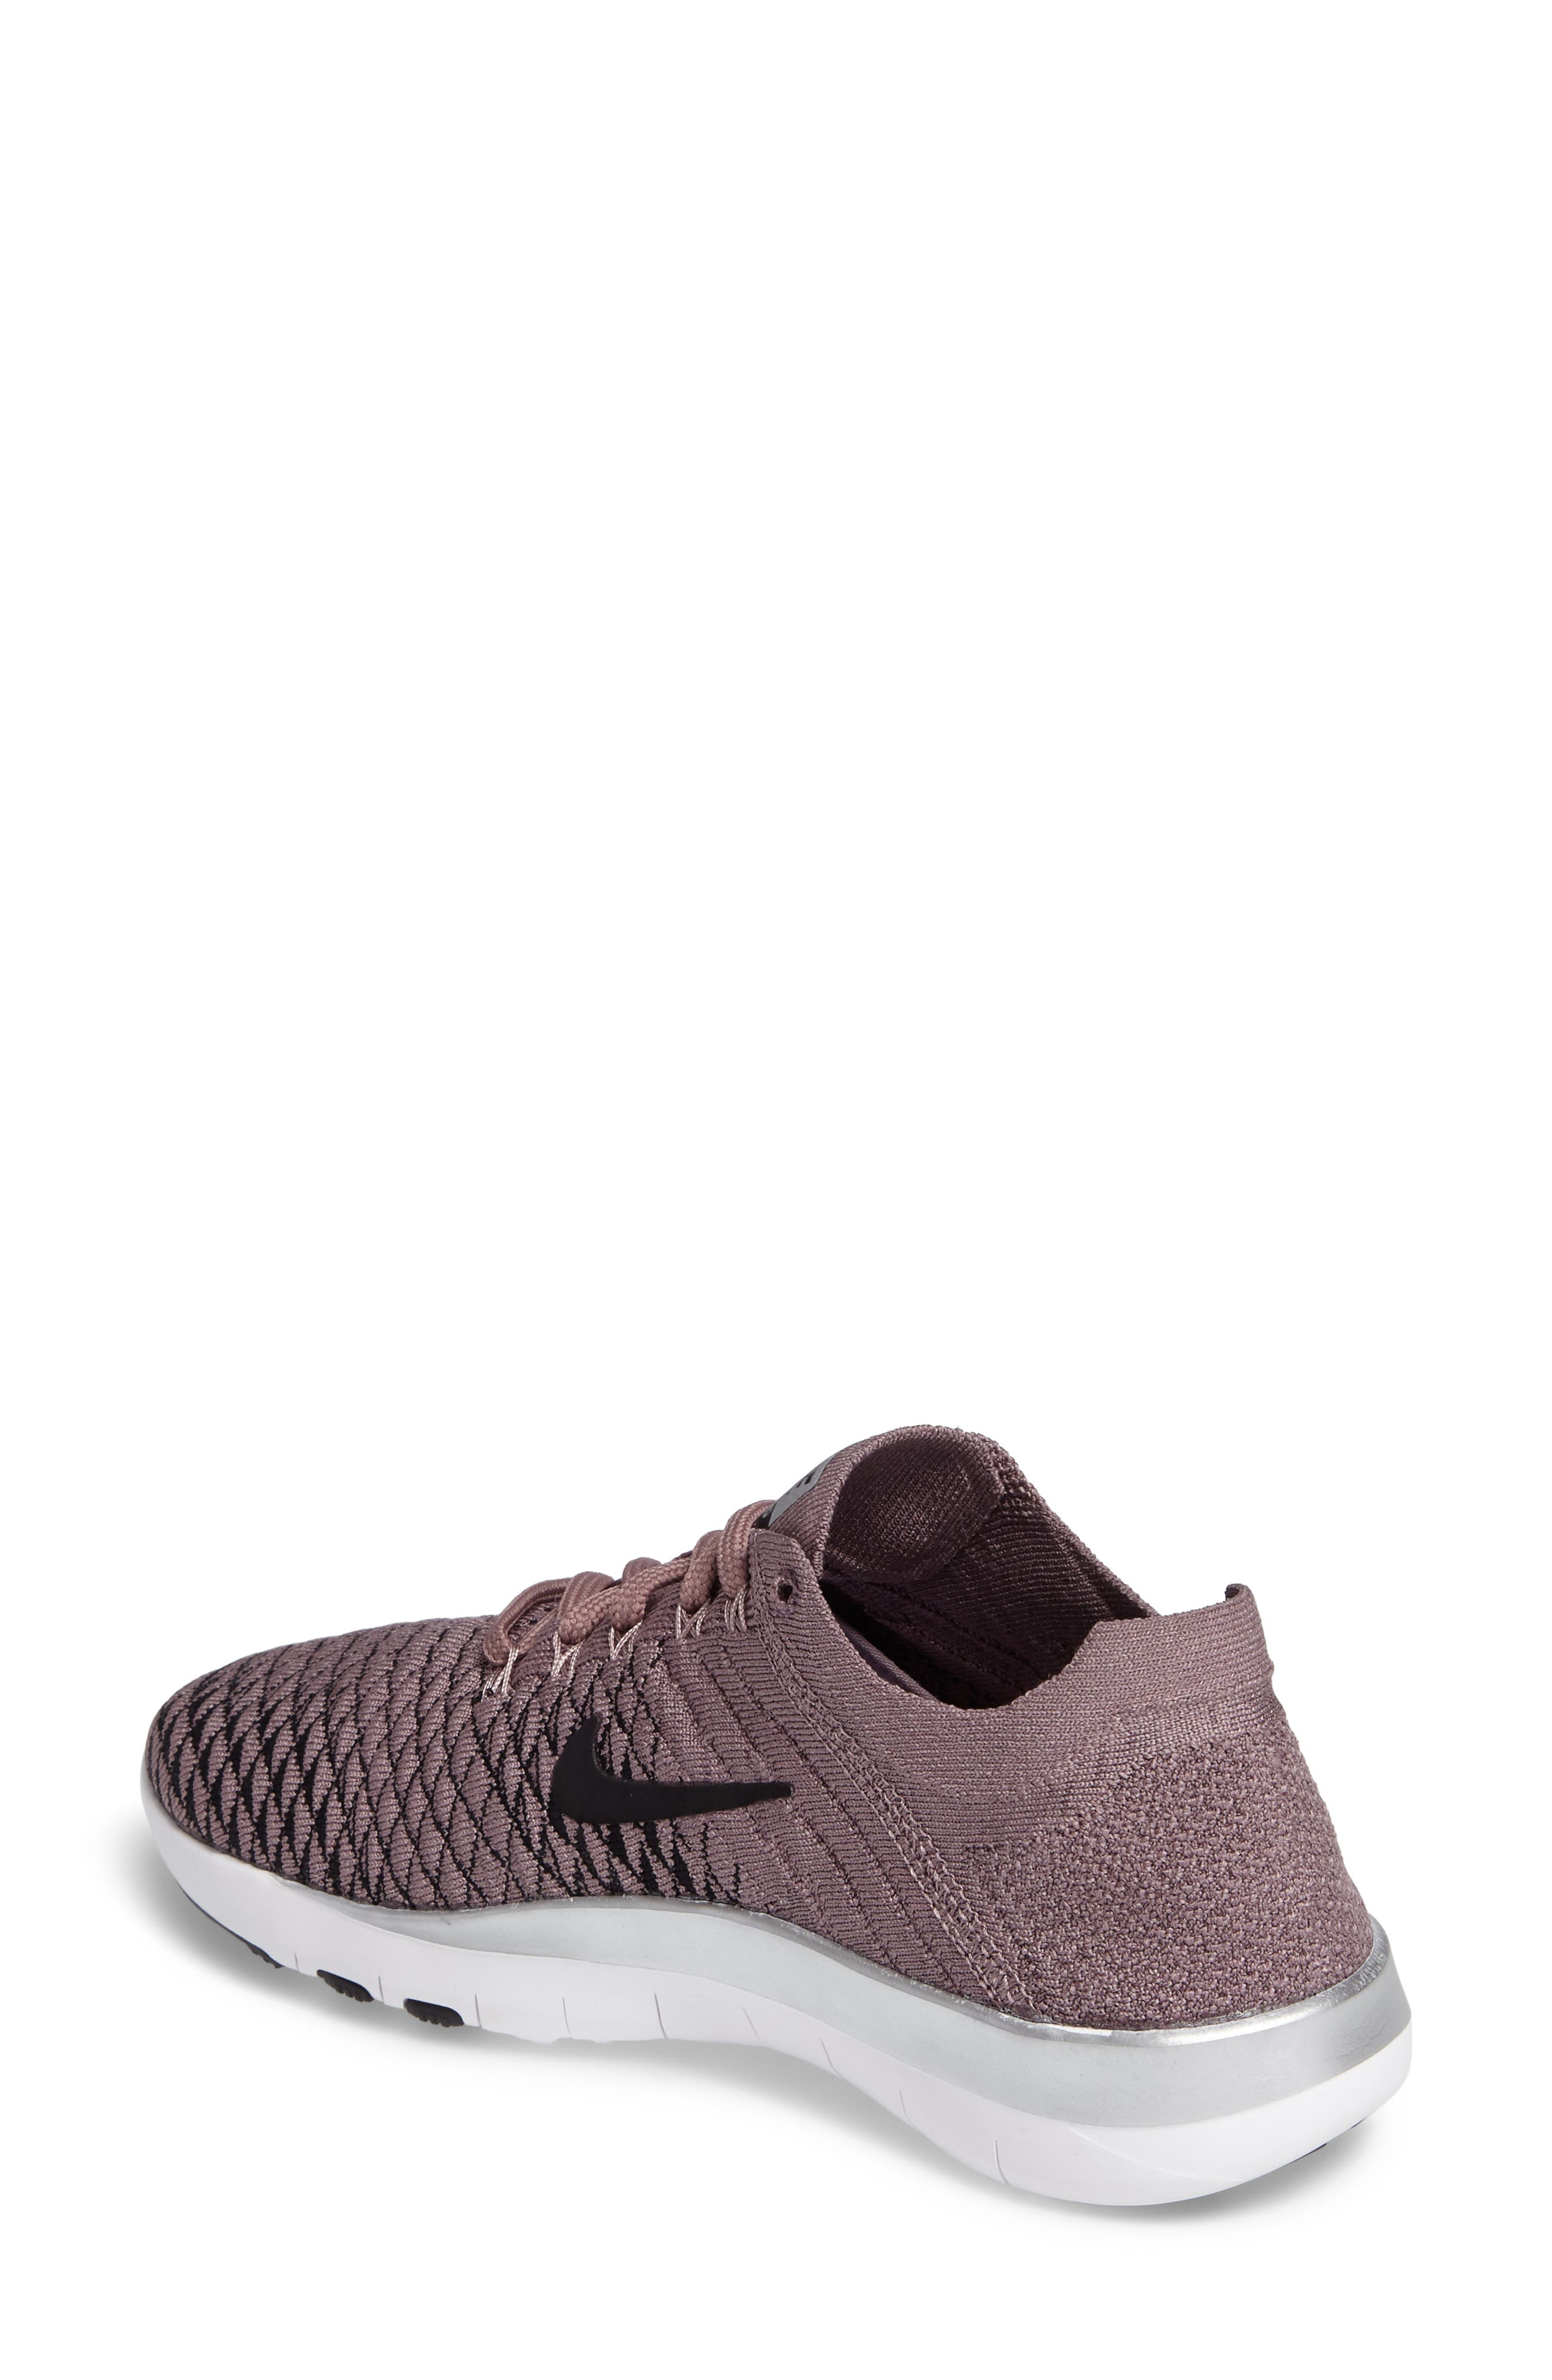 Free Focus Flyknit 2 Bionic Training Shoe,                             Alternate thumbnail 3, color,                             Taupe Grey/ Black/ Chrome